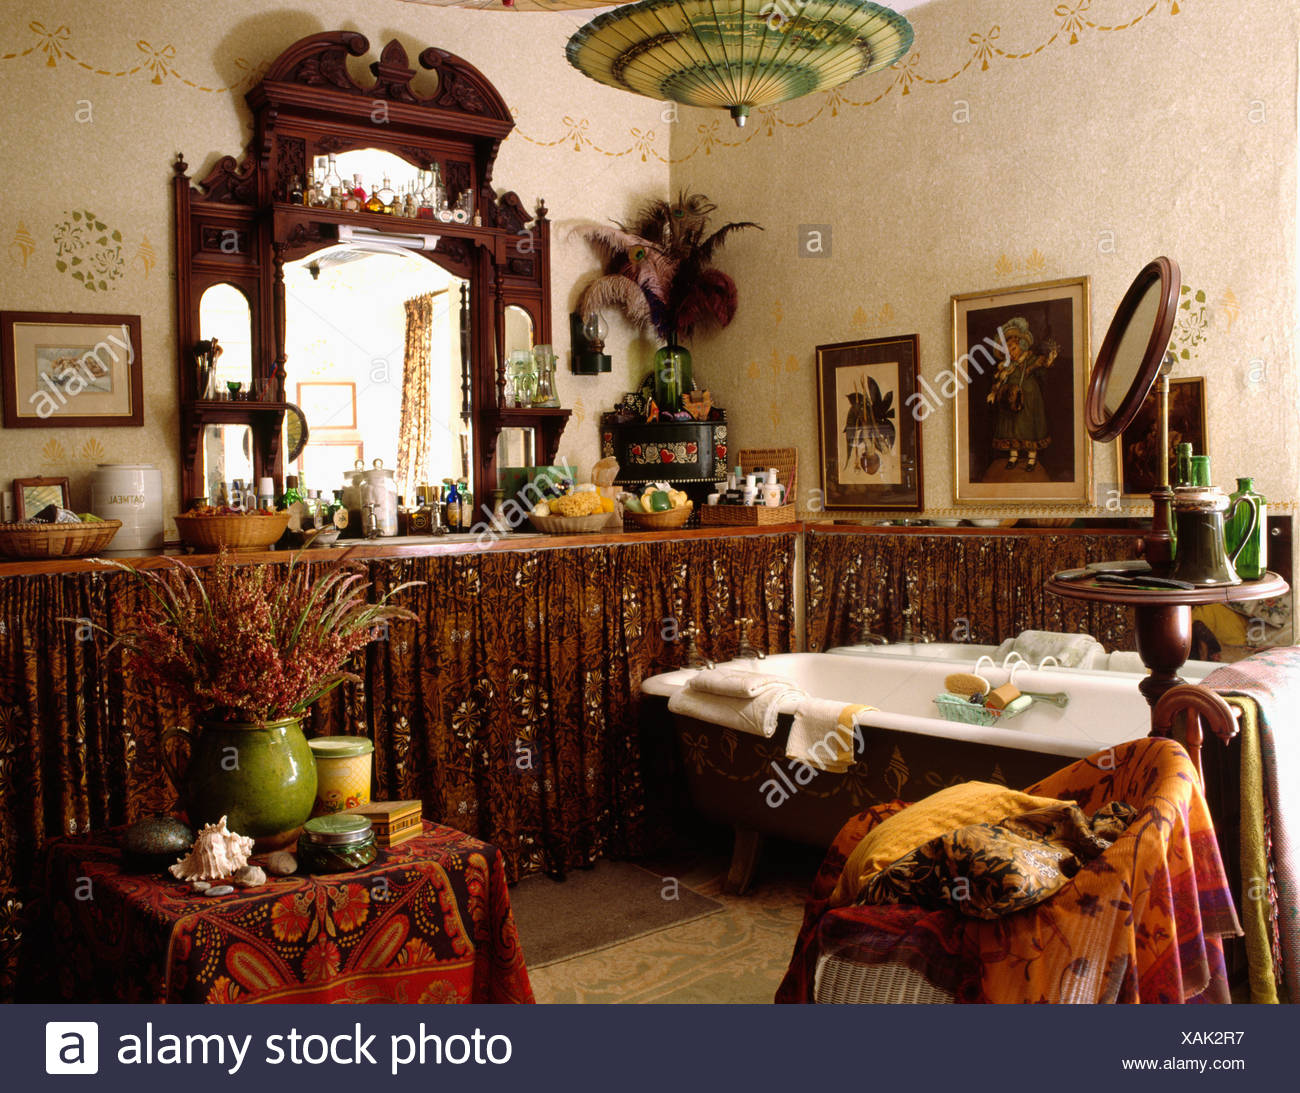 Edwardian Mirror Above Curtains On Vanity Units In Eighties Bathroom Stock Photo Alamy